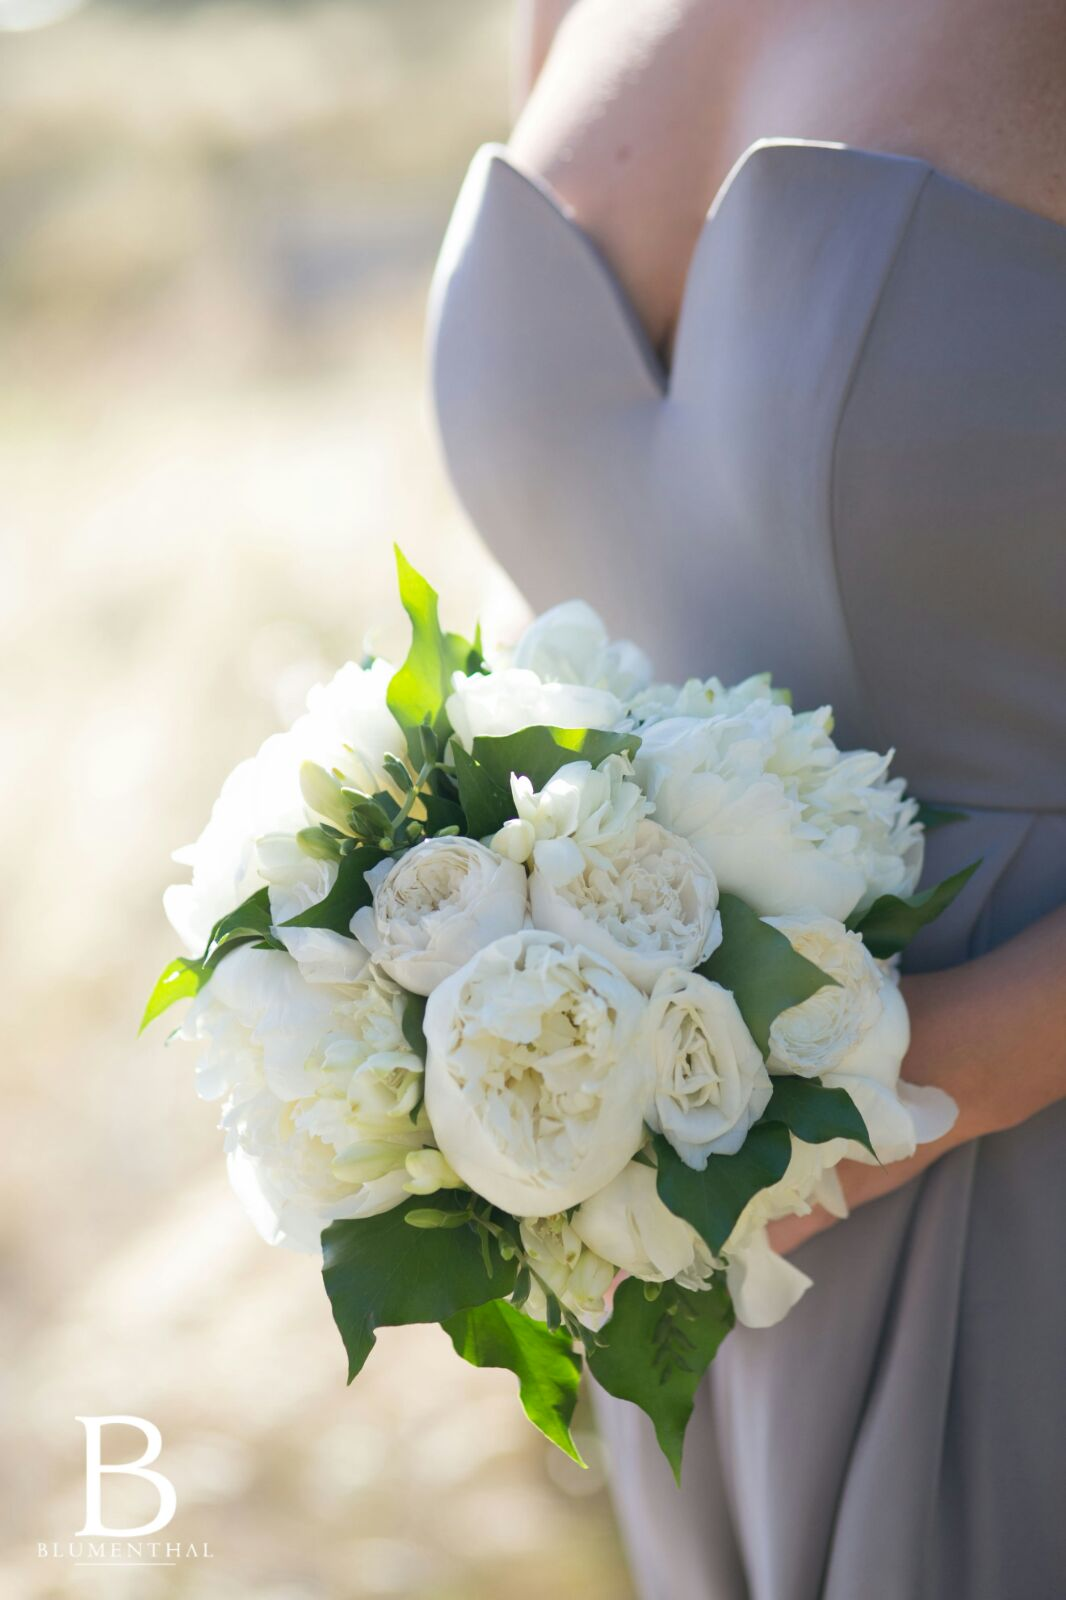 Bridal Wedding Flowers Bouquet White and Green